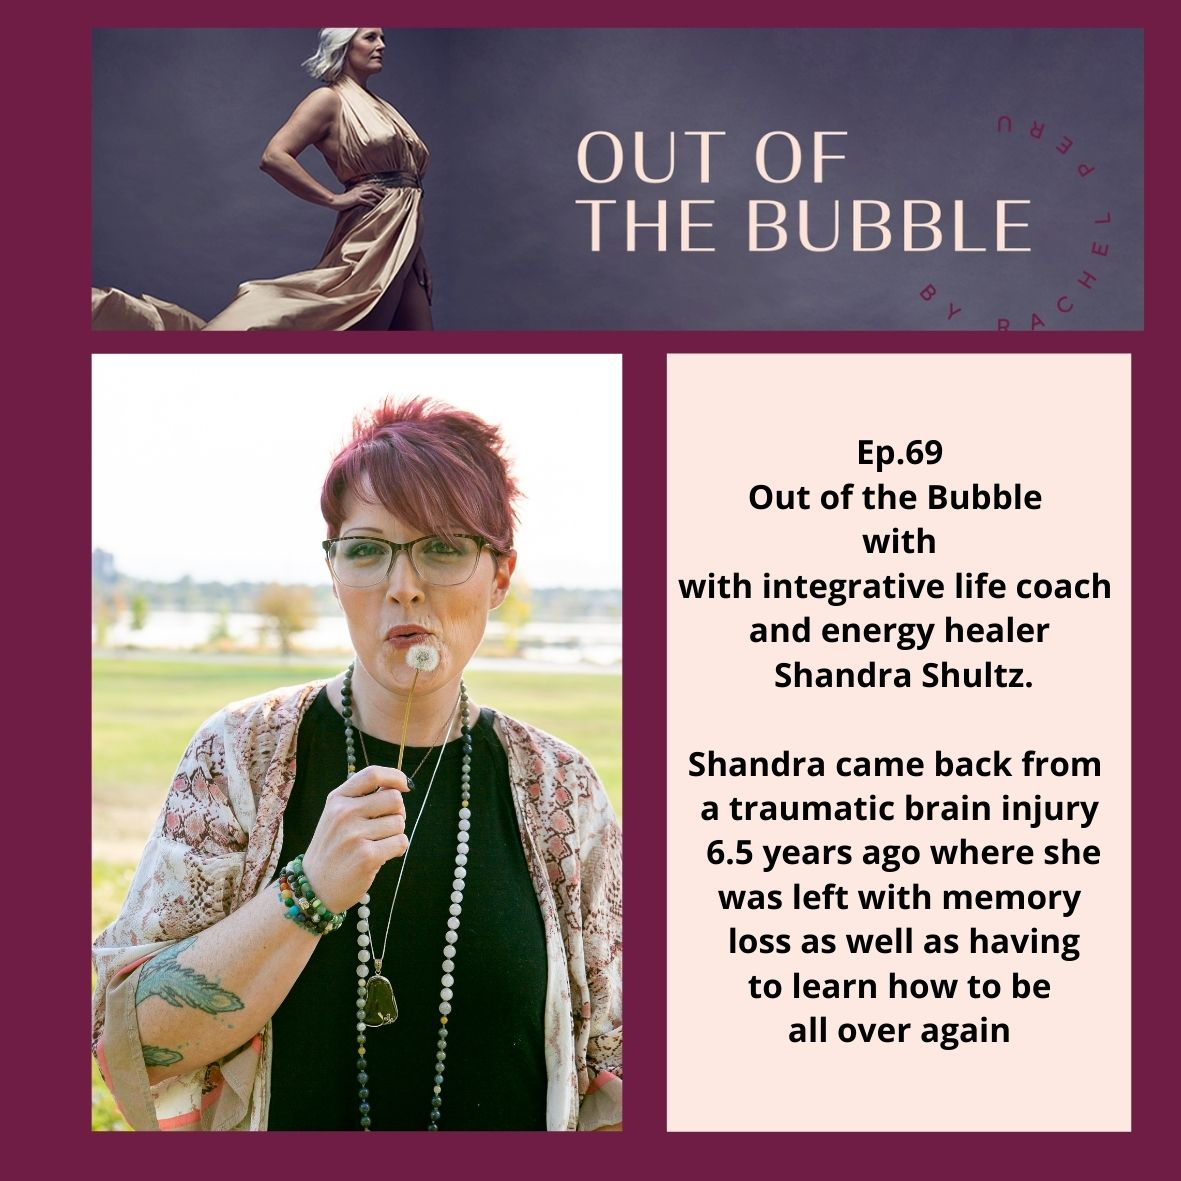 Ep.69 Out of the Bubble with integrative life coach and energy healer Shandra Shultz.